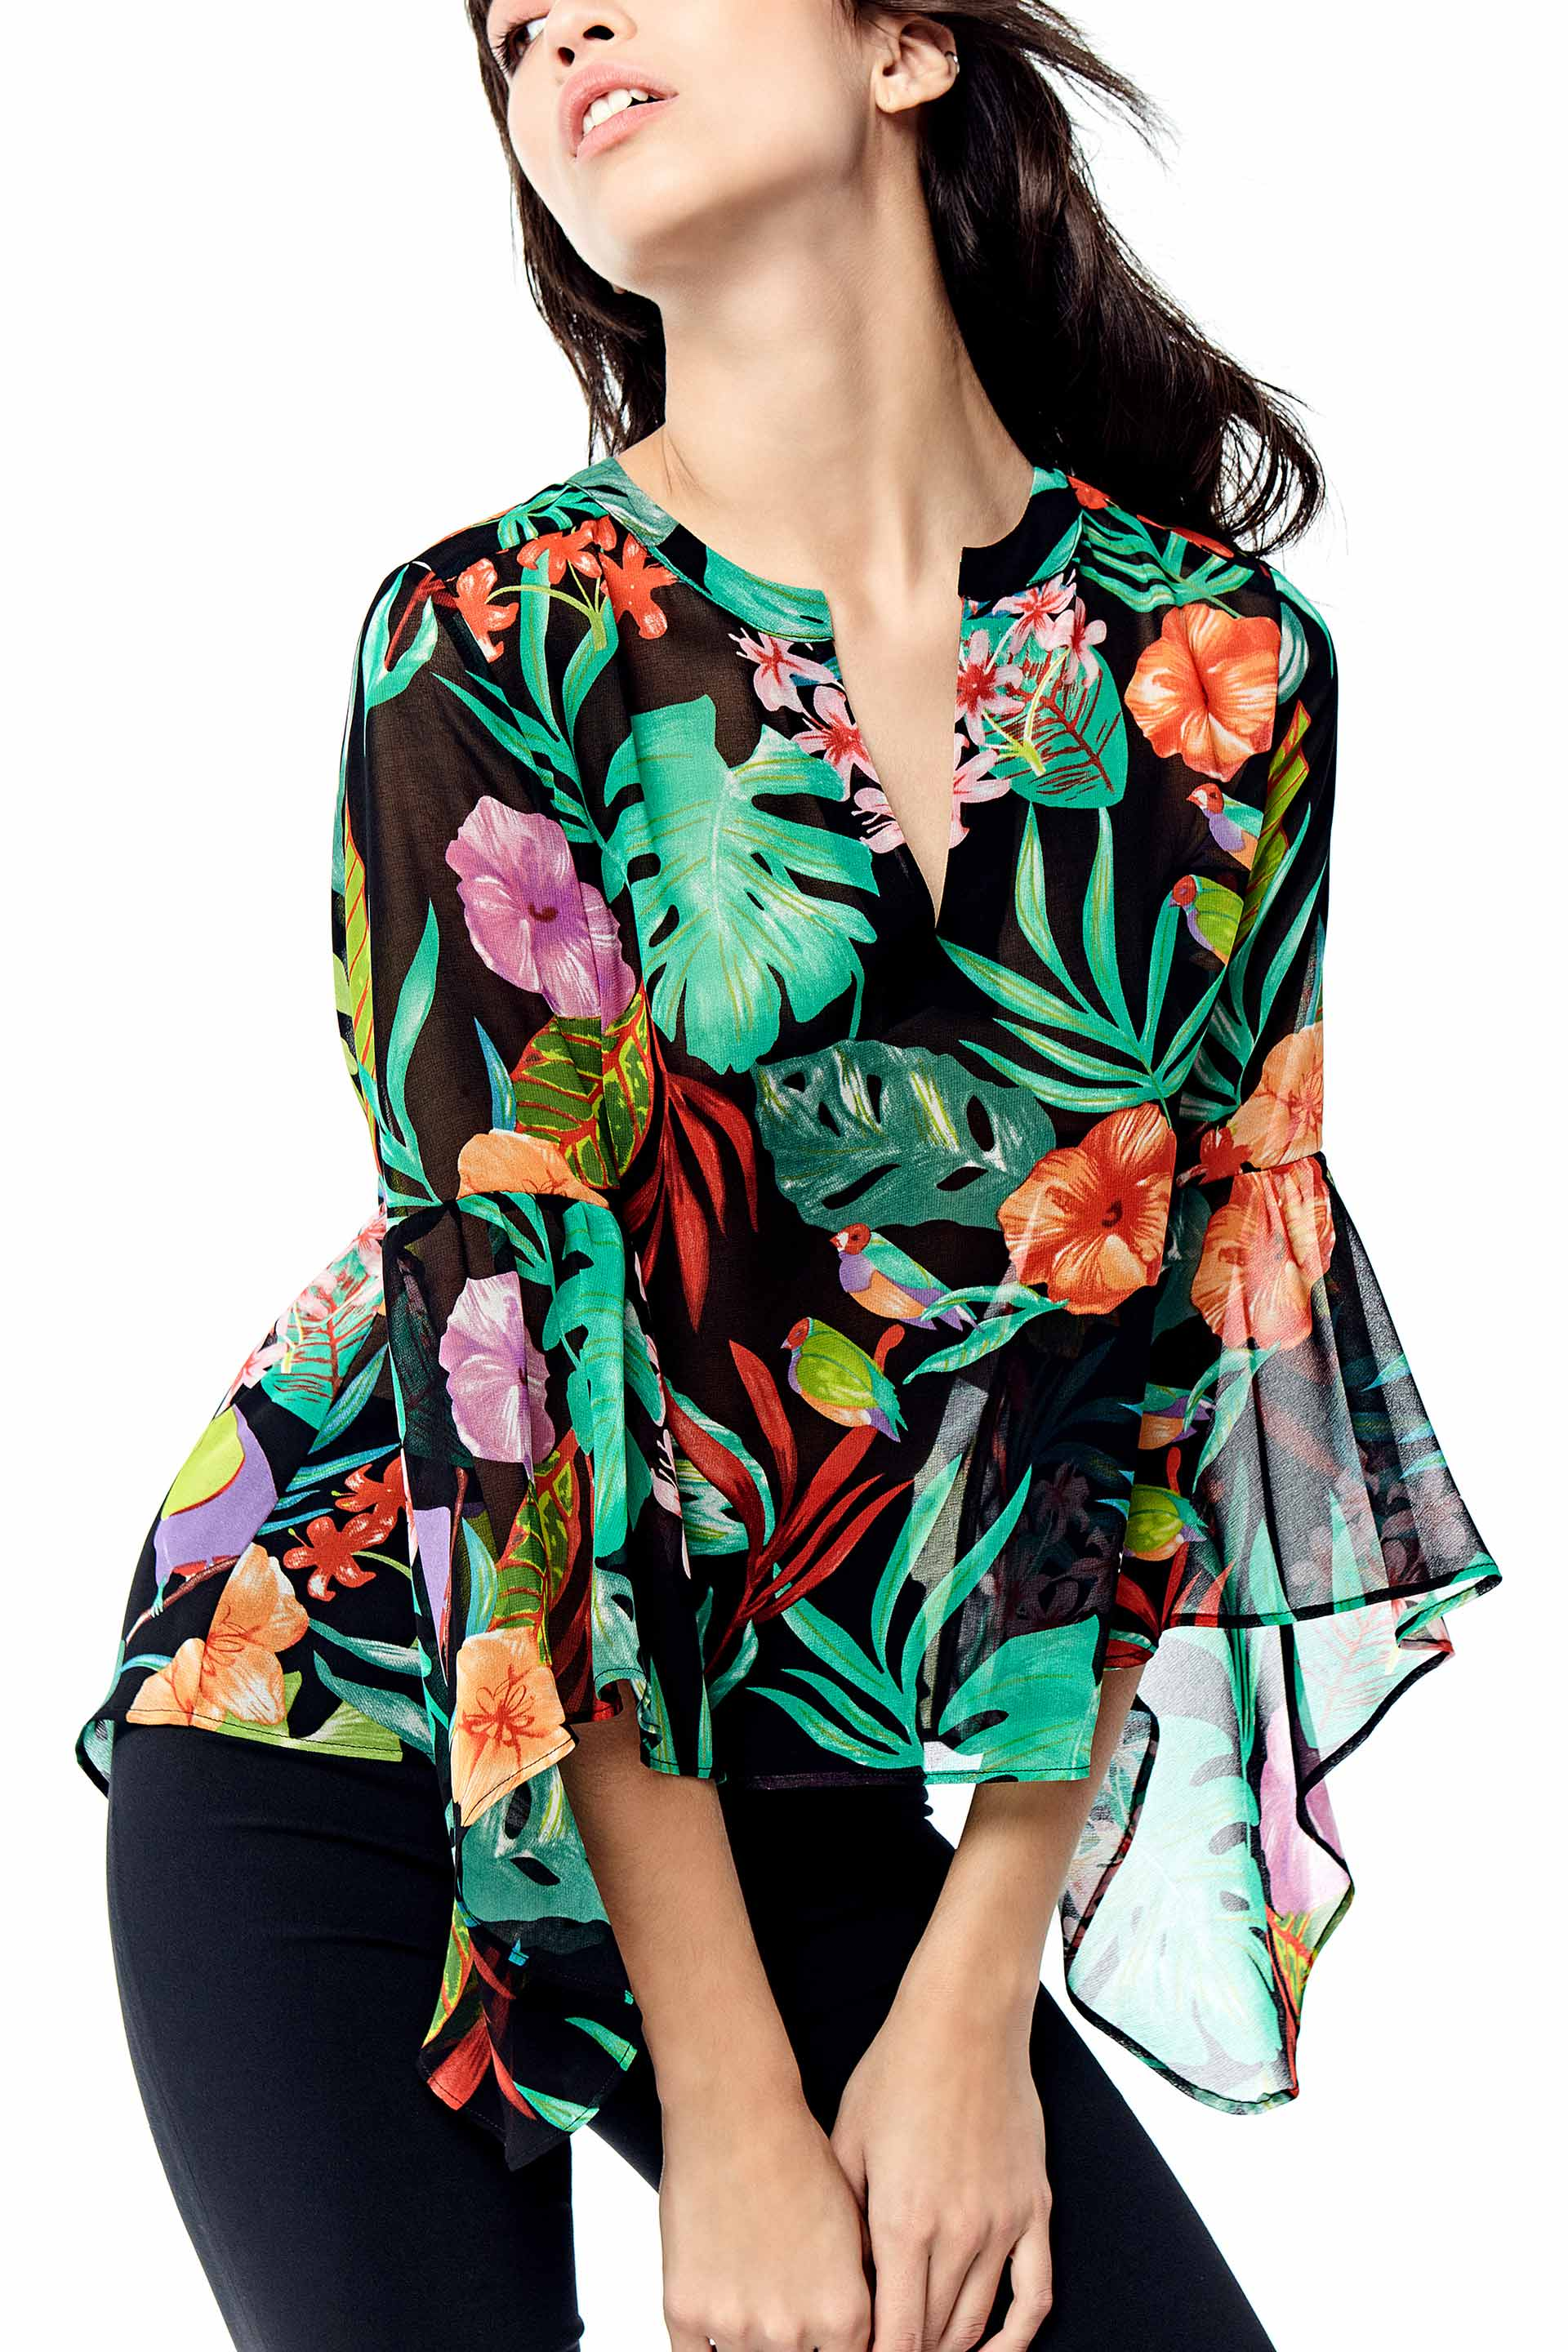 markova_blusa-tropical-_56-27-2019__picture-25850